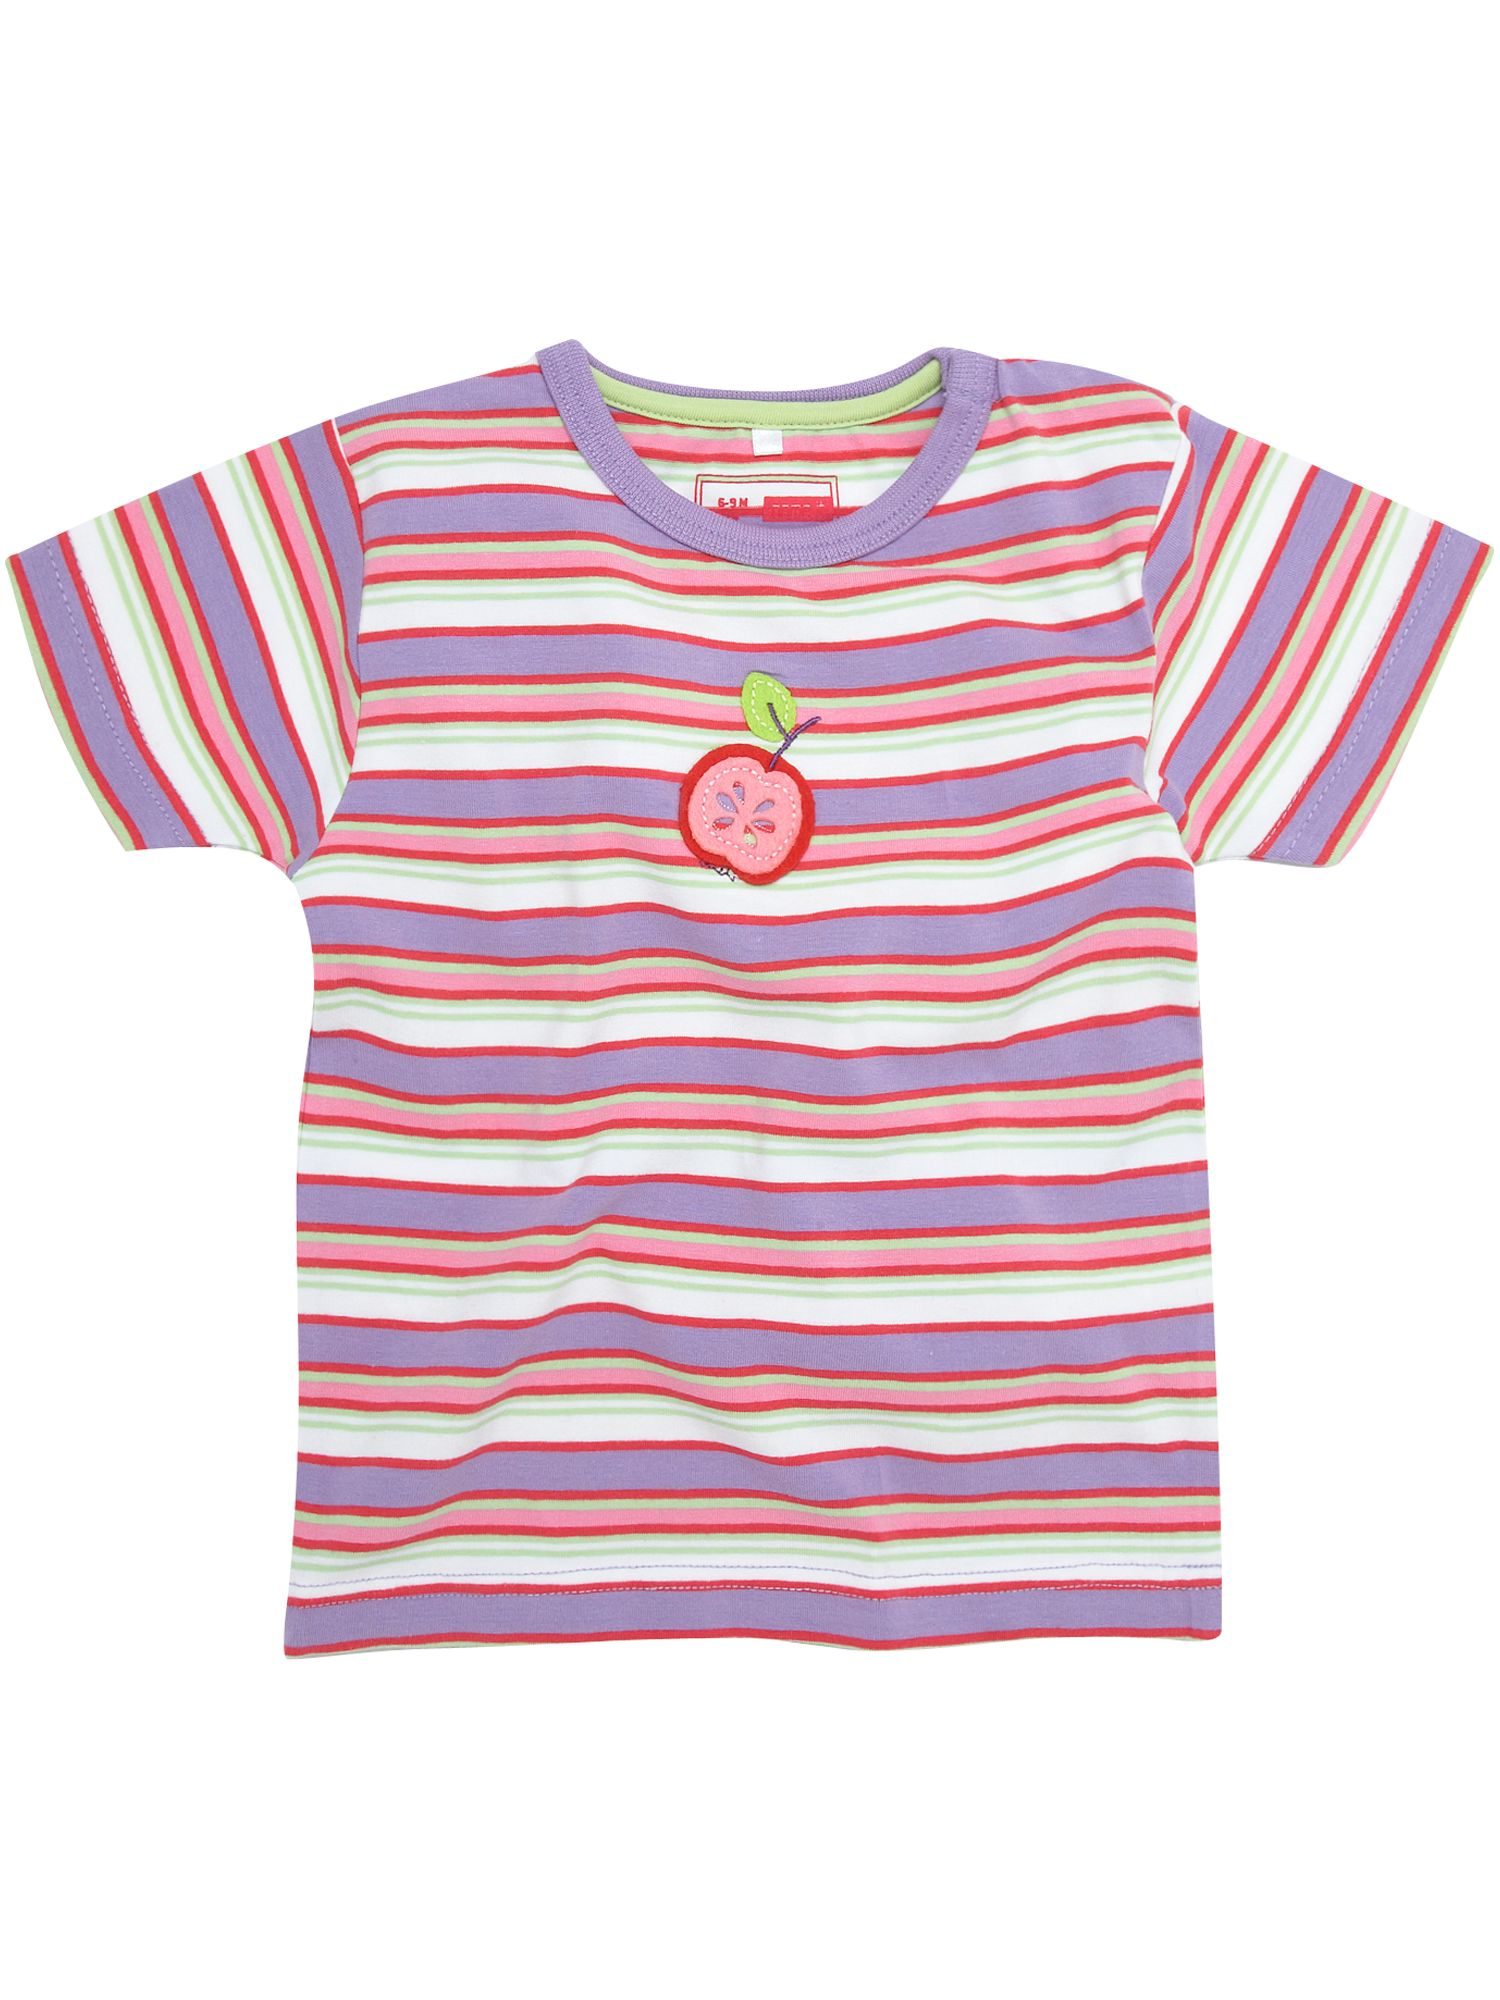 Name It Short-sleeved striped with applique T-shirt product image